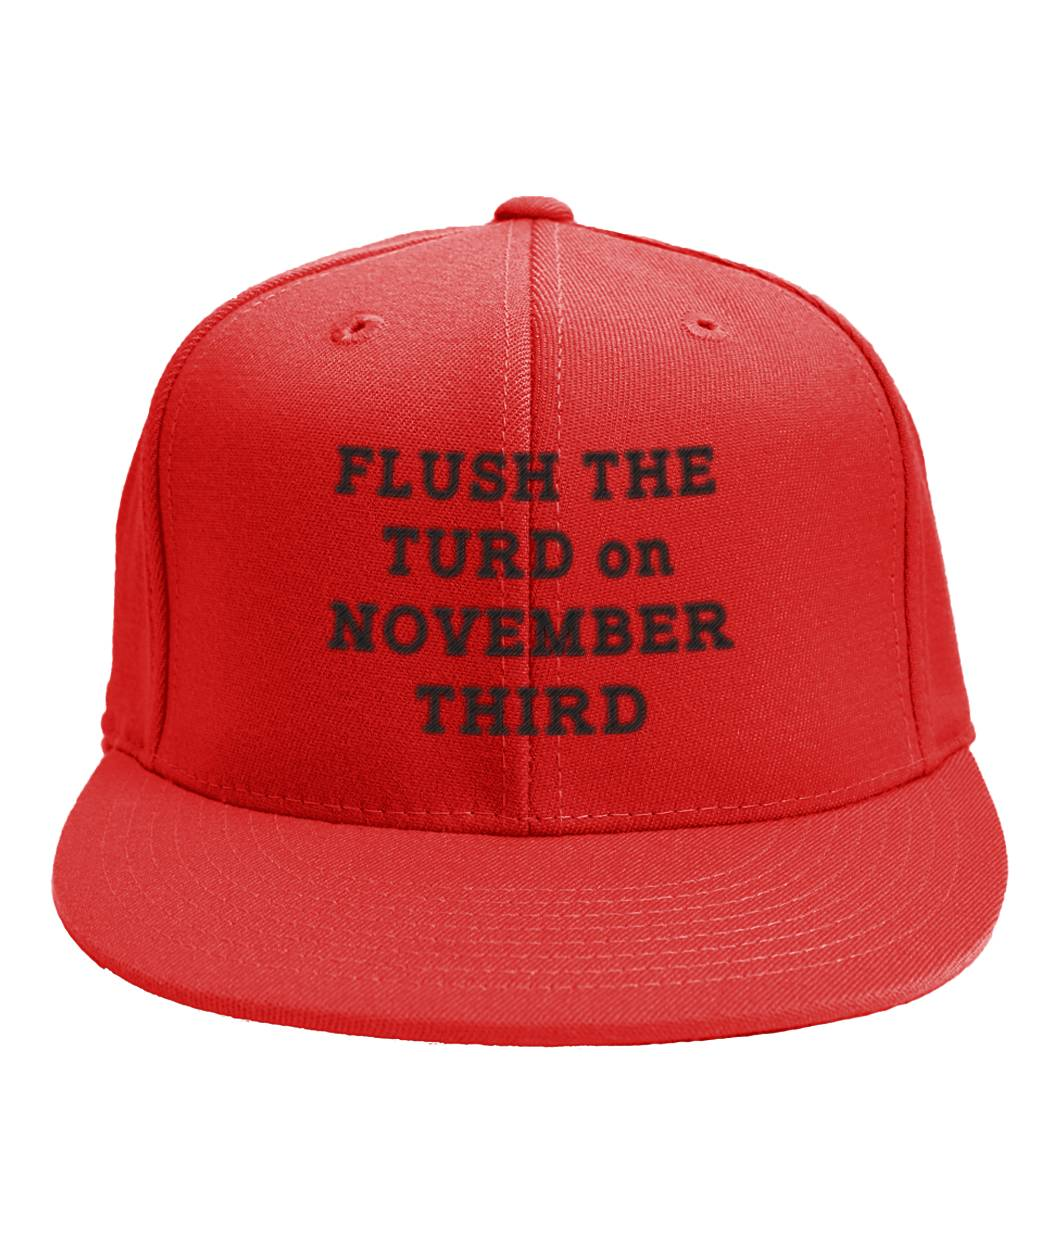 Flush The Turd on November Third Red Snapback